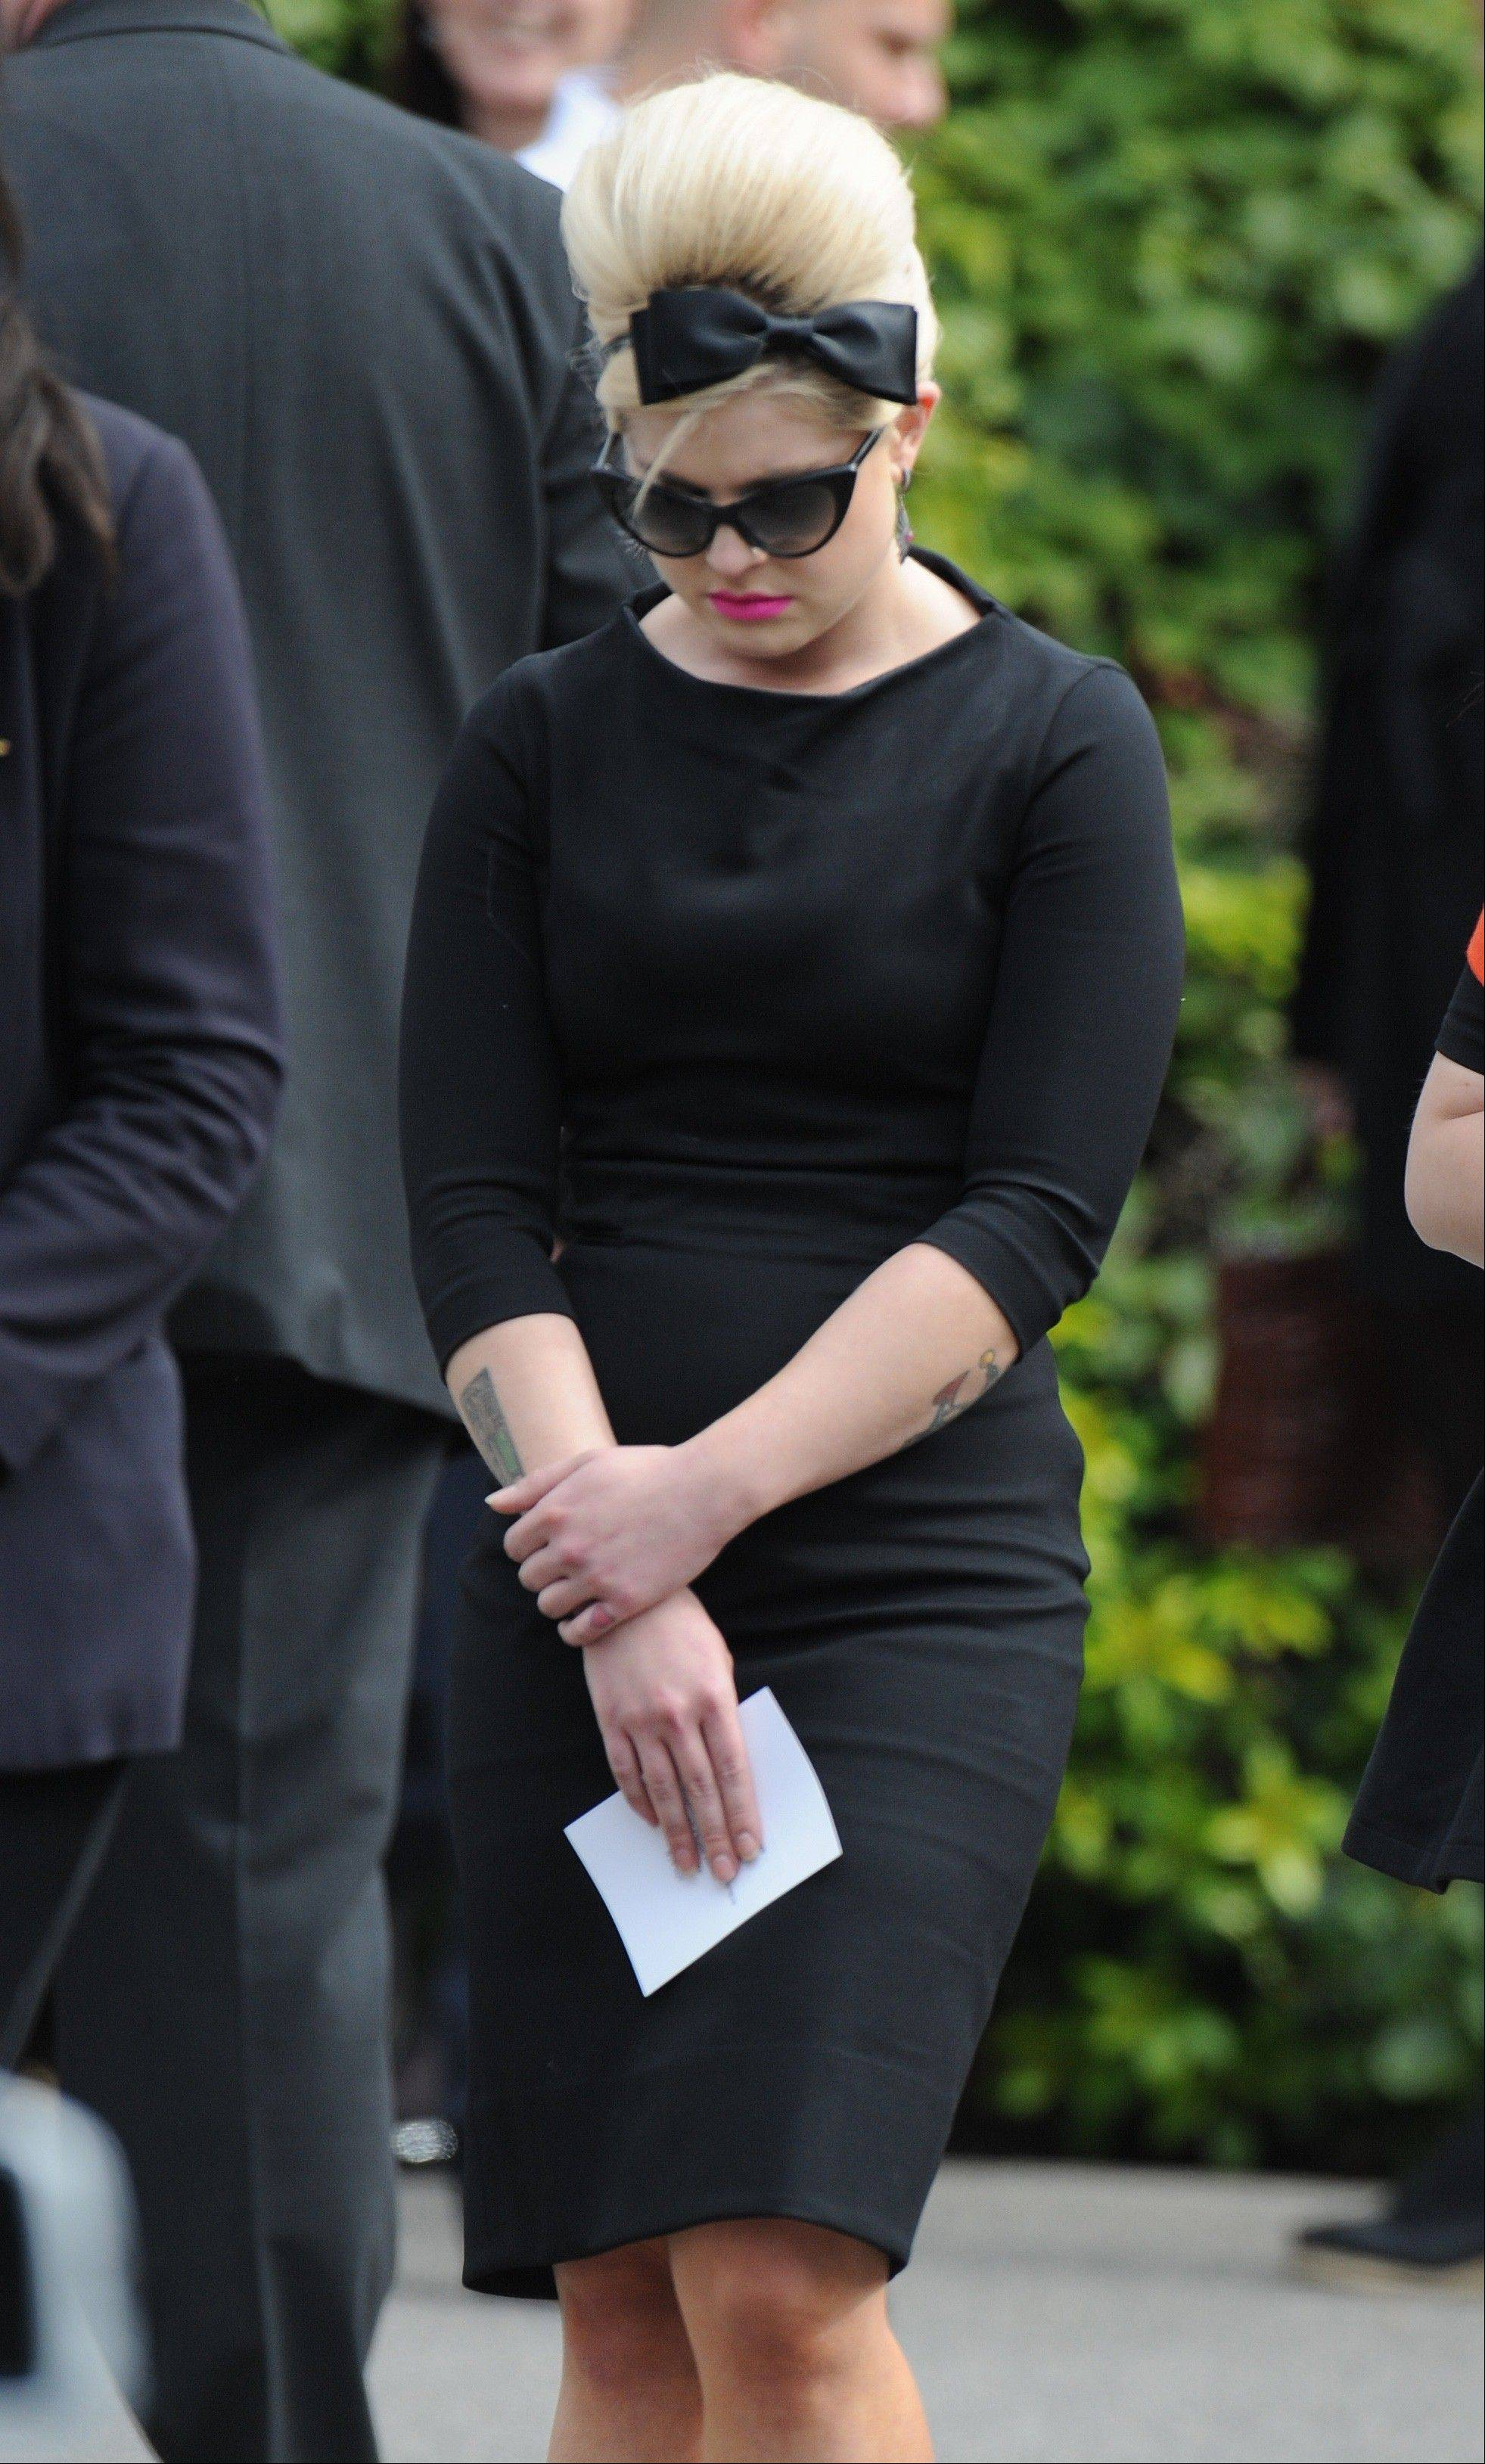 Media personality Kelly Osbourne leaves Golders Green Crematorium in London, Tuesday, July 26, 2011, after attending the funeral of singer Amy Winehouse.